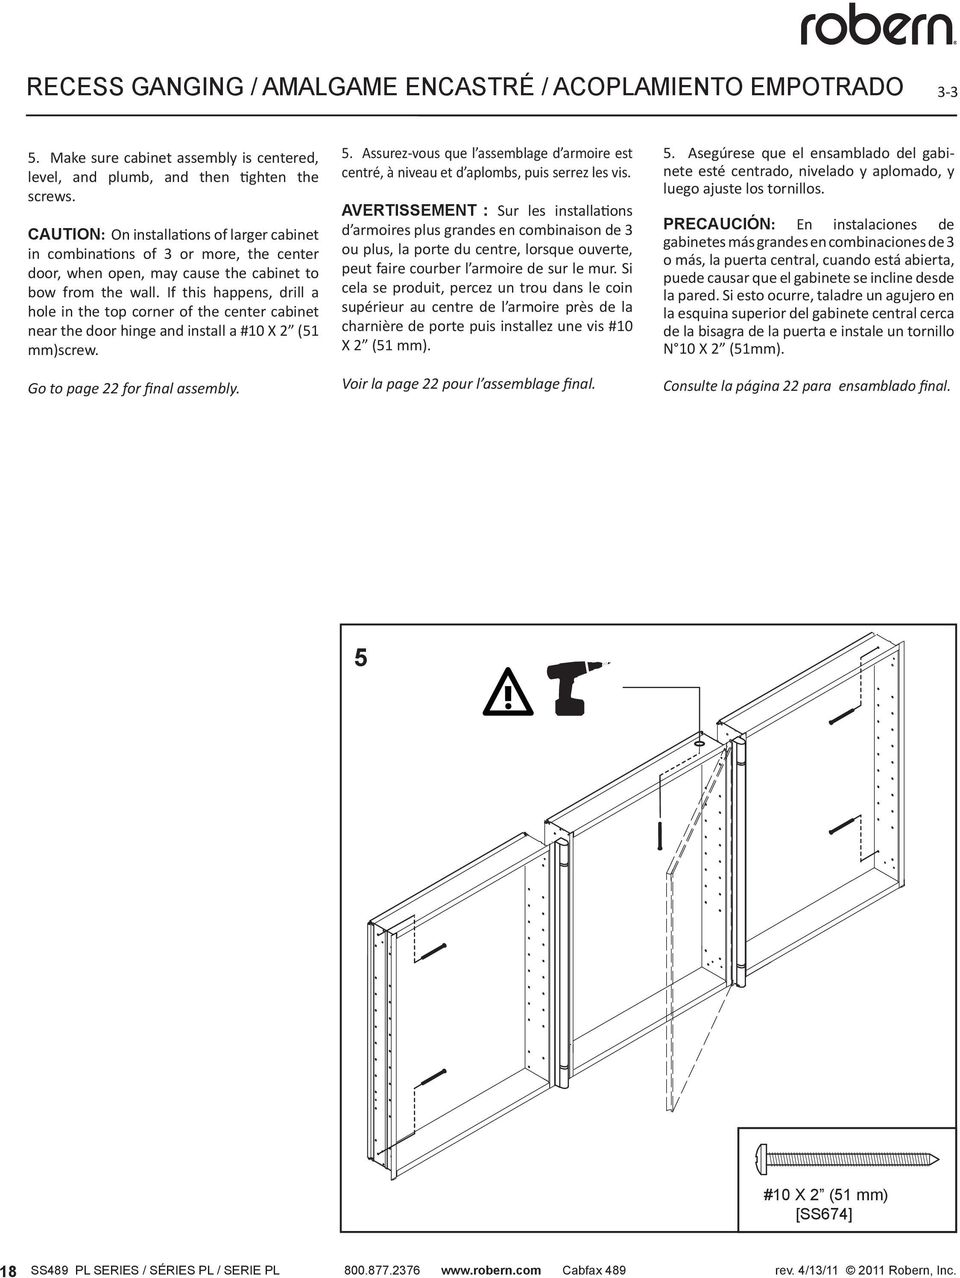 If this happens, drill a hole in the top corner of the center cabinet near the door hinge and install a #10 X 2 (51 mm)screw. Go to page 22 for final assembly. 5.